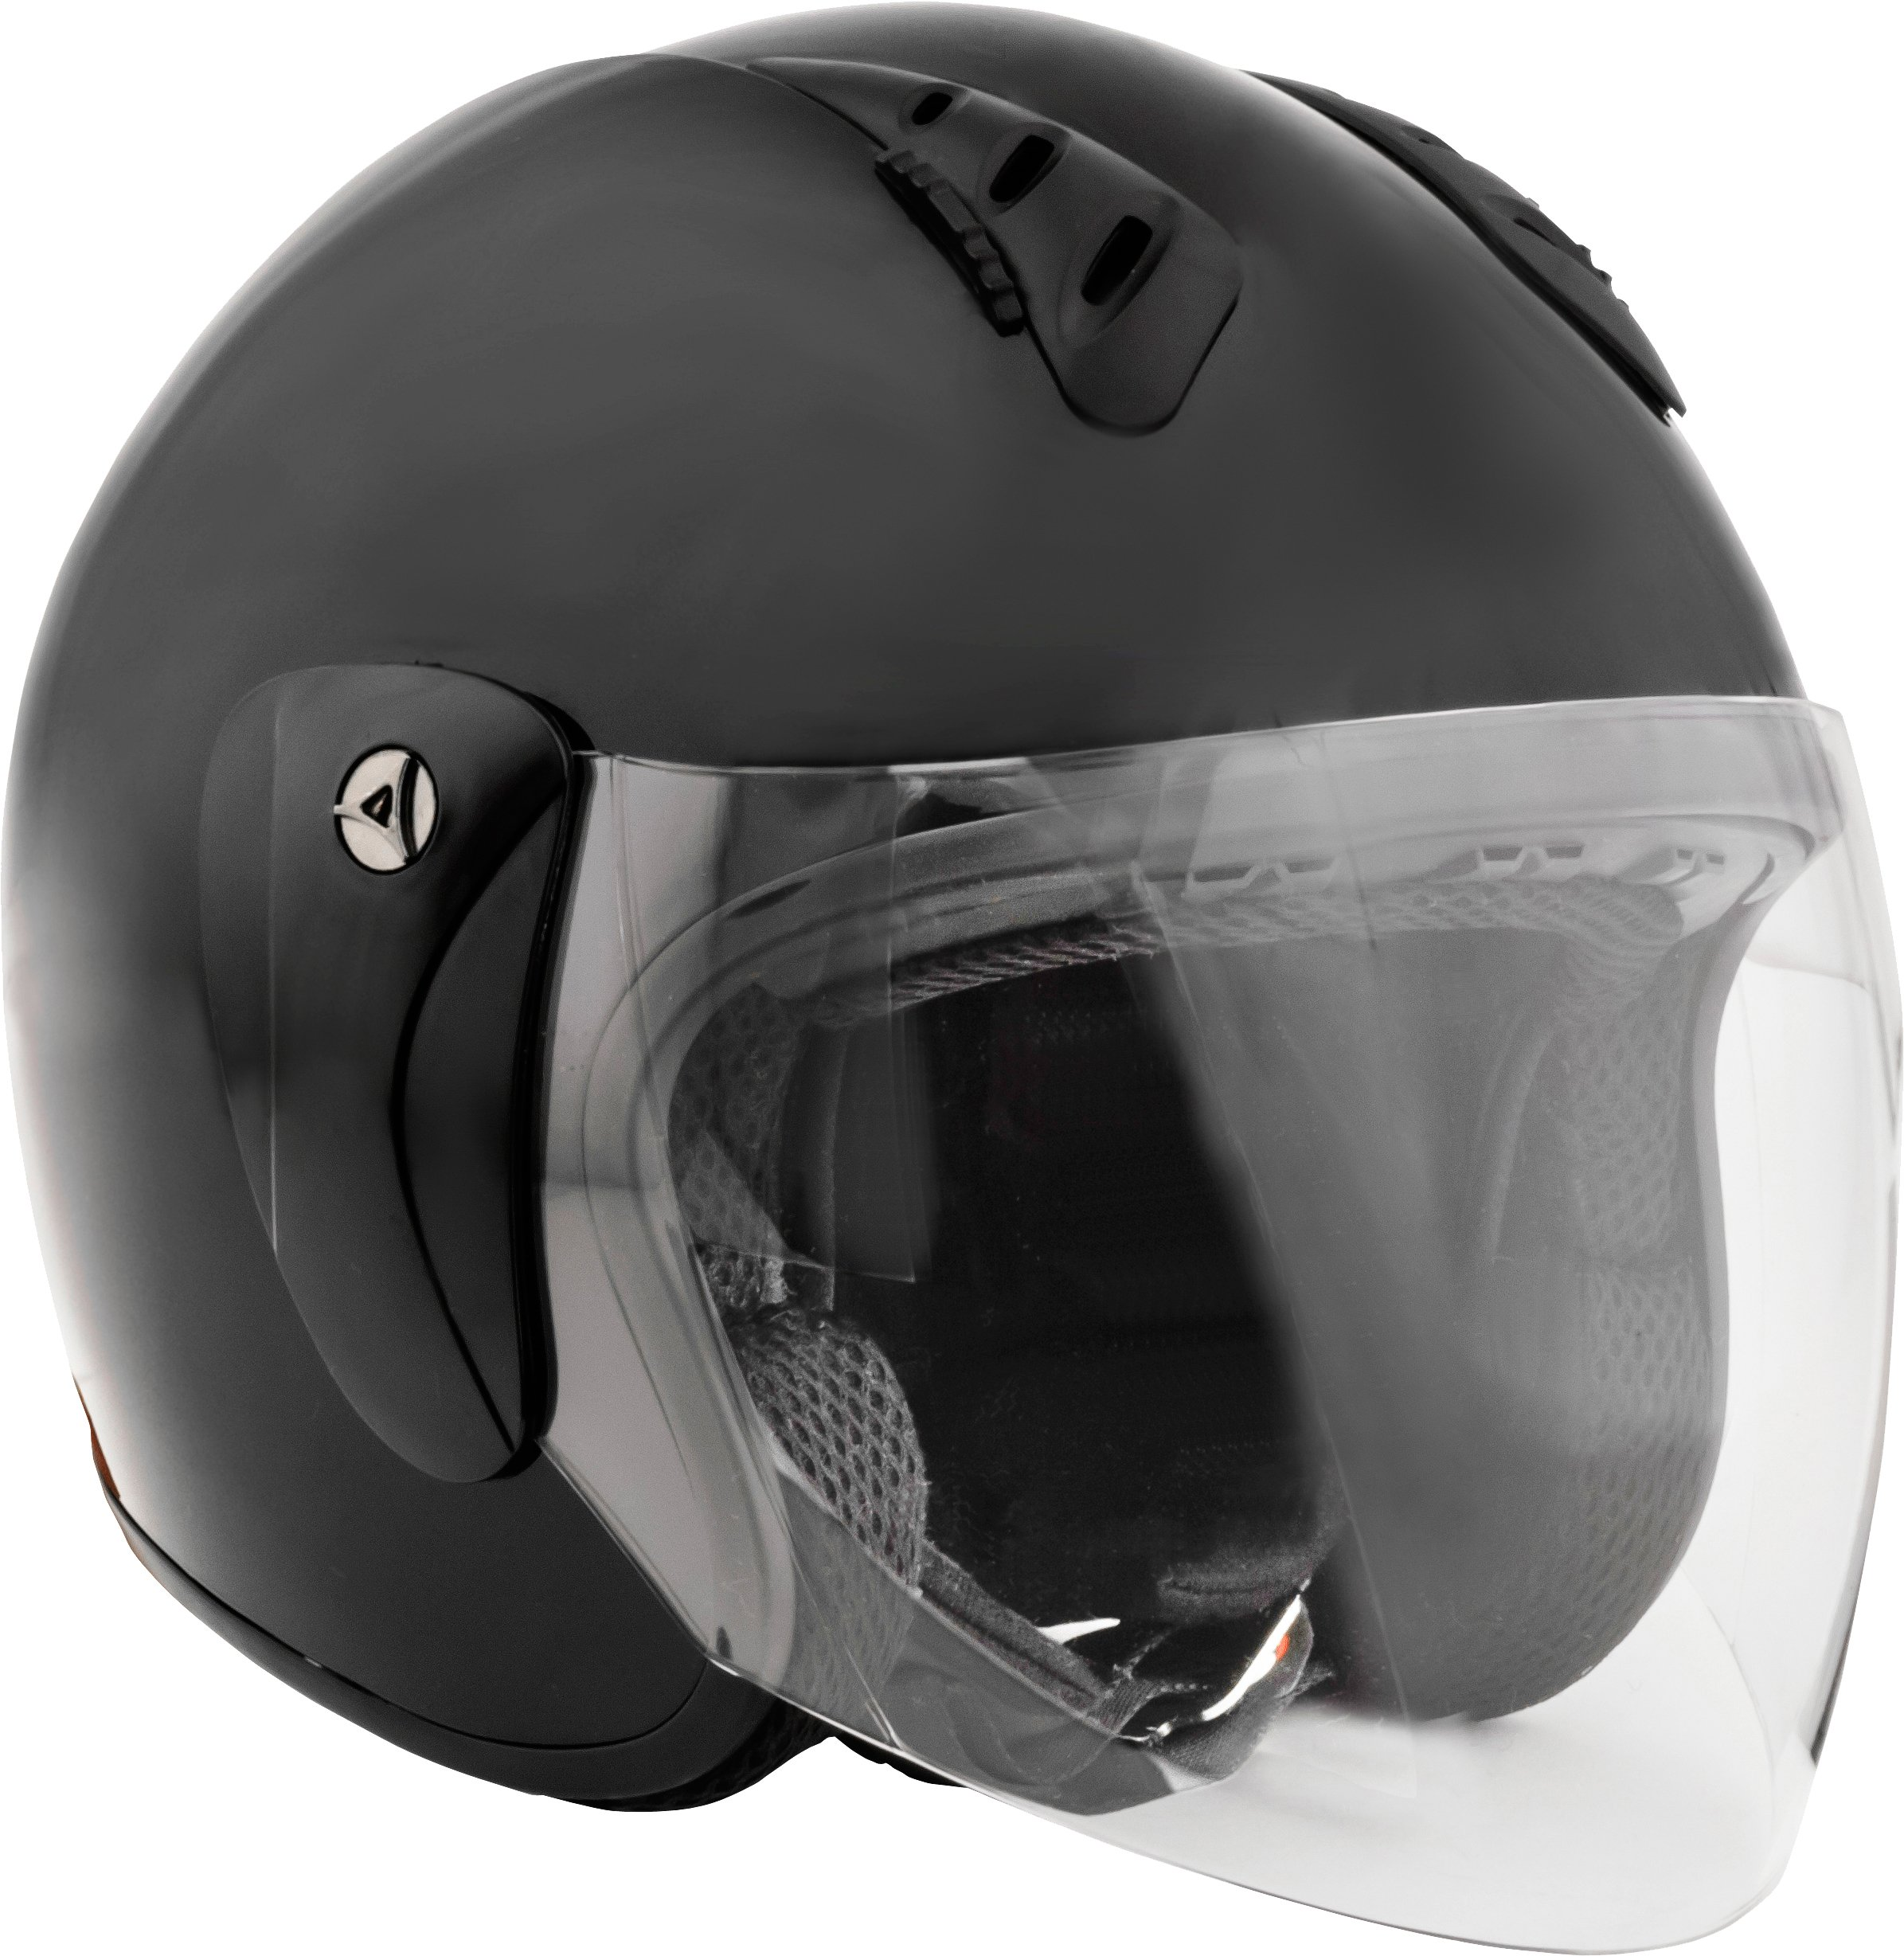 Fuel Helmets SH-WS0016 Open Face Helmet with Shield, Gloss Black, Large